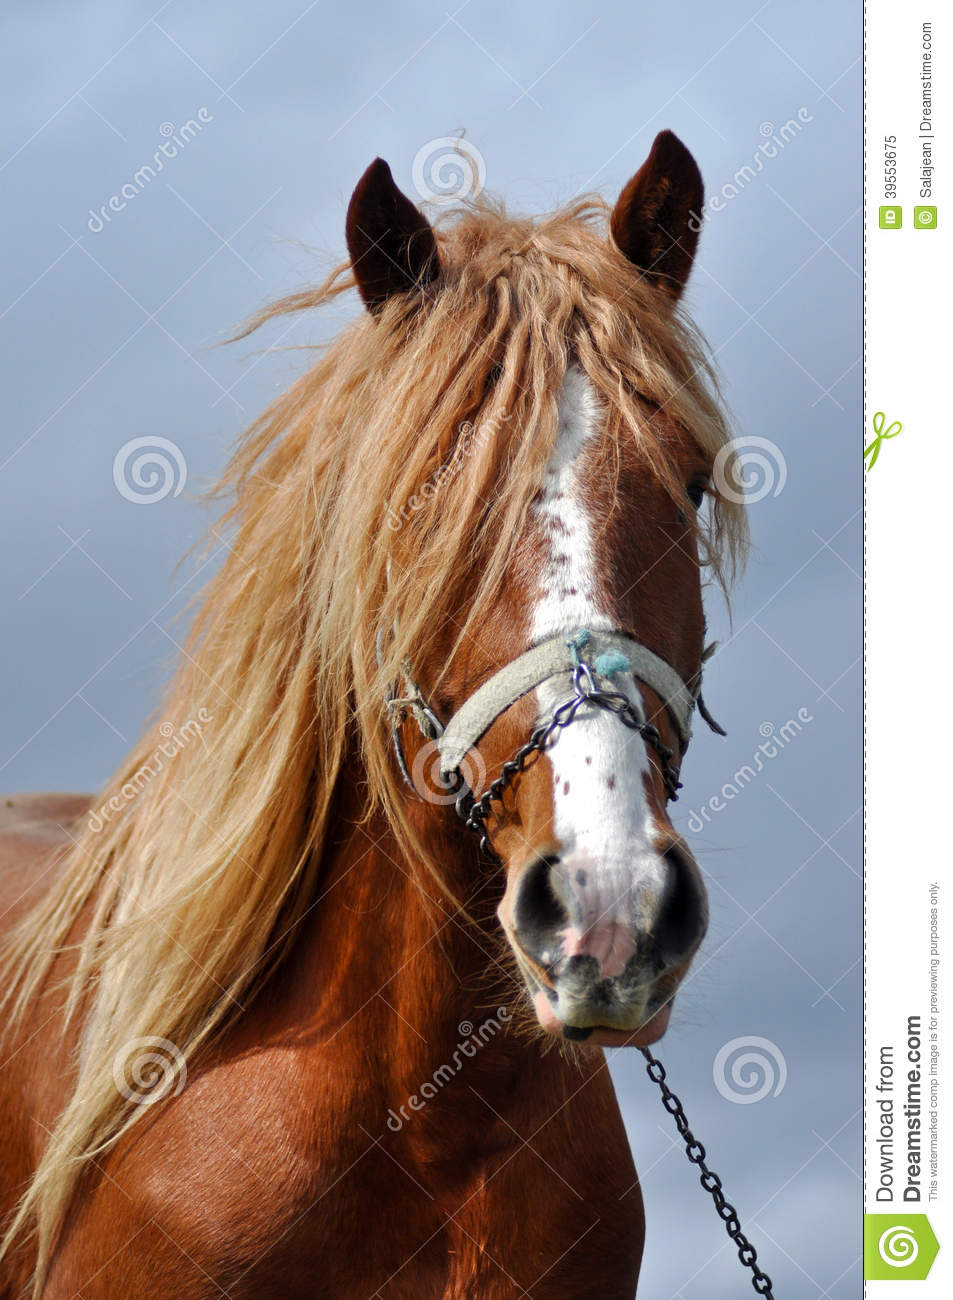 Brown Horse With Blonde Hair Stock Photo Image 39553675